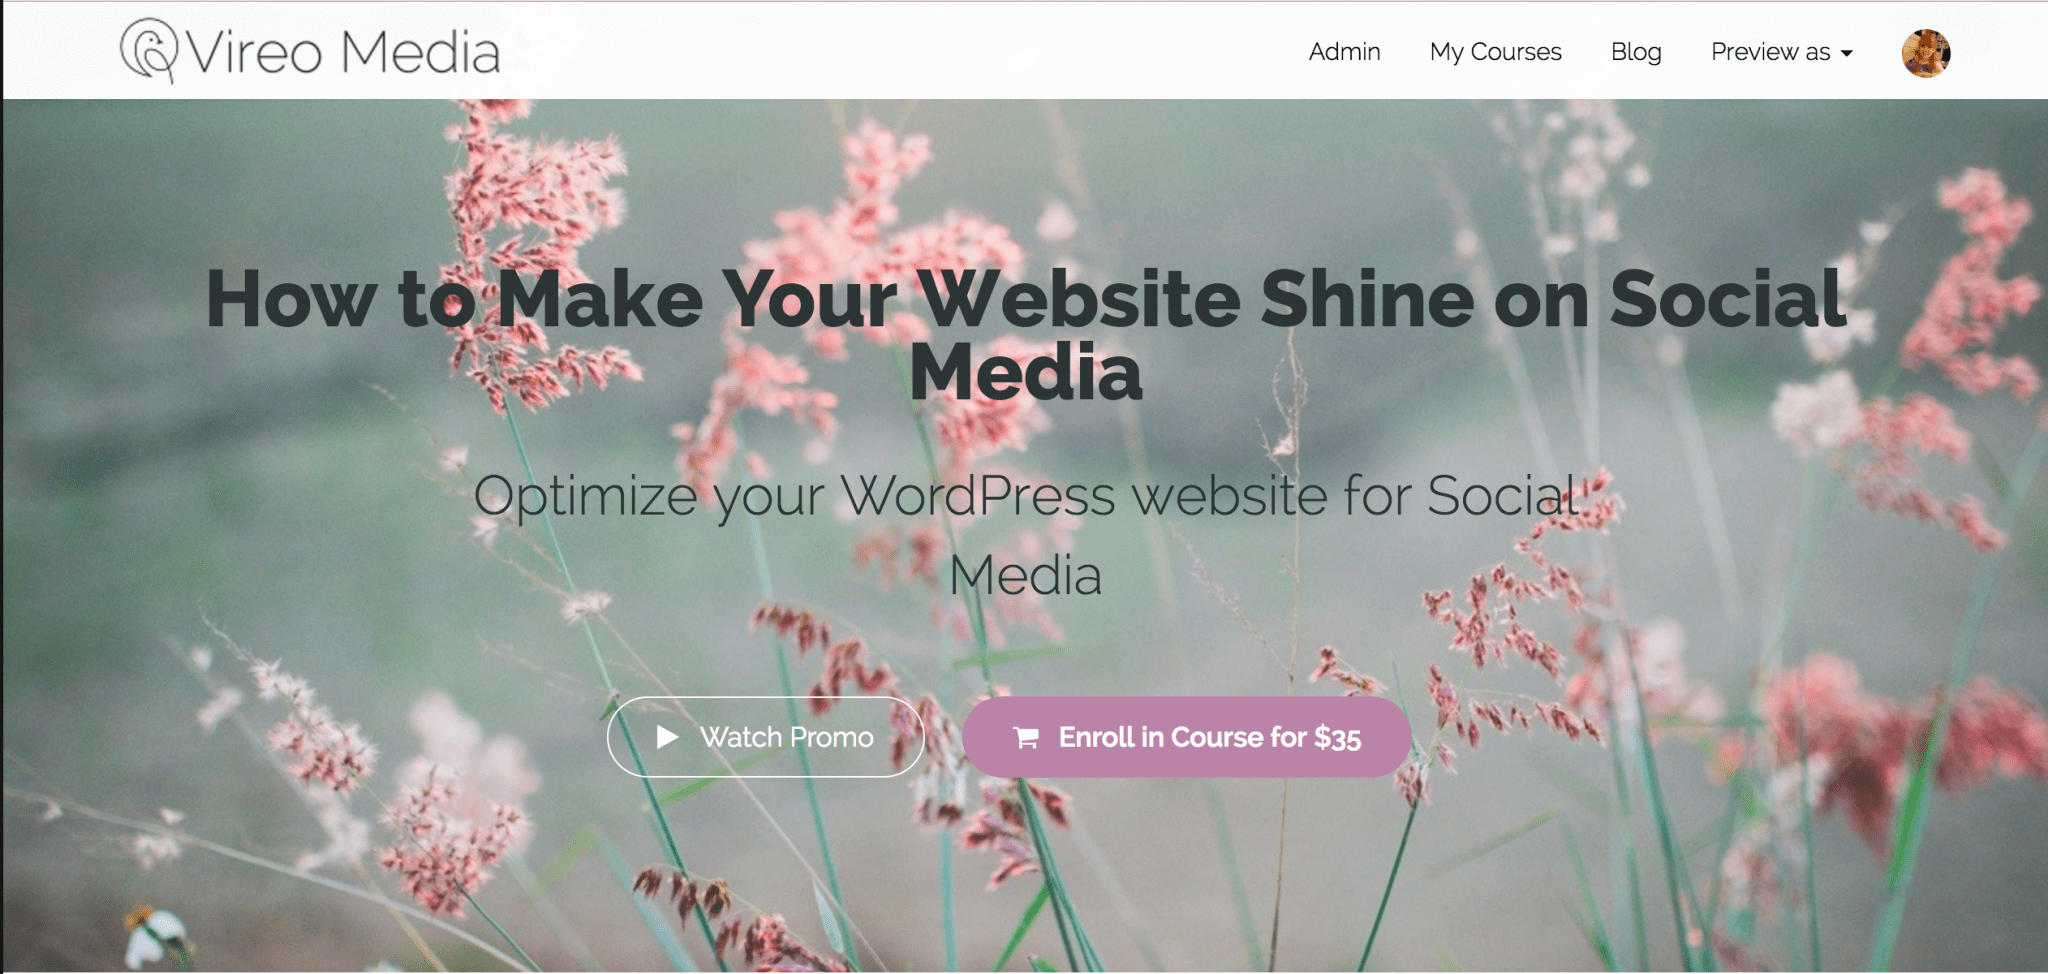 Course: How to Make Your Website Shine on Social Media